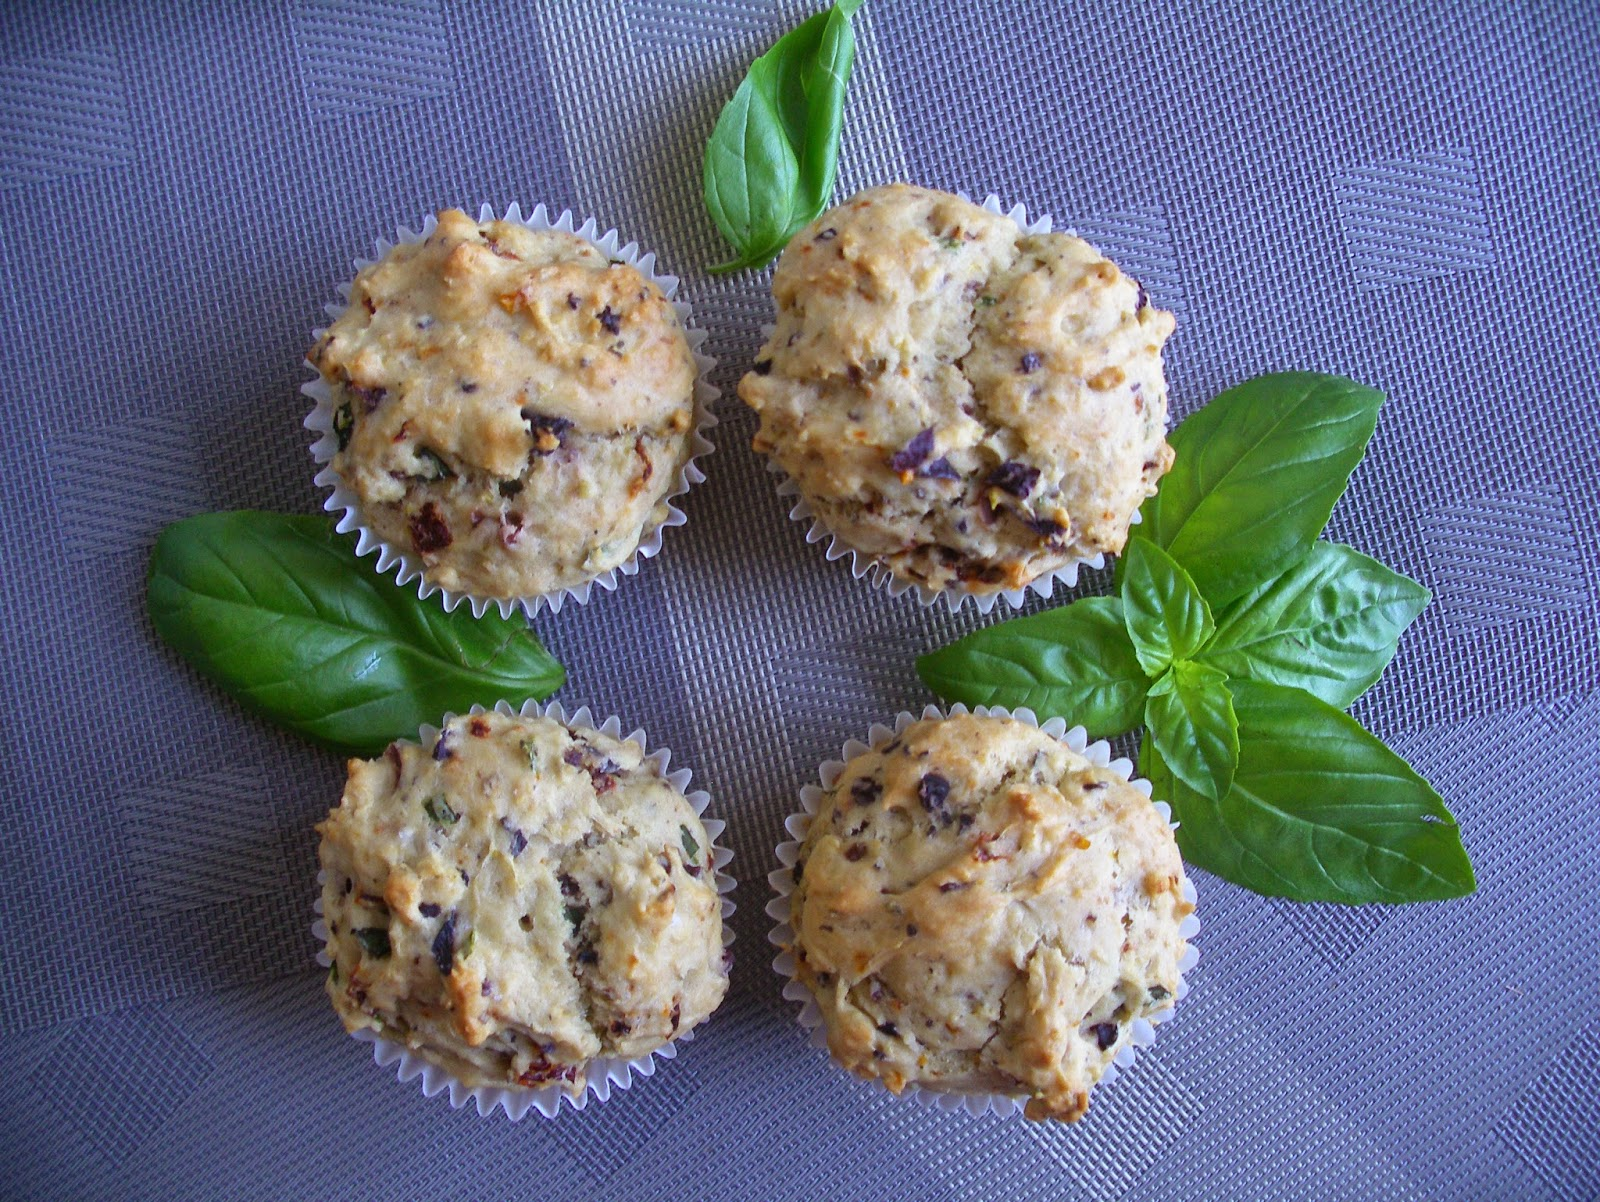 Sundried tomatoes and olives muffins